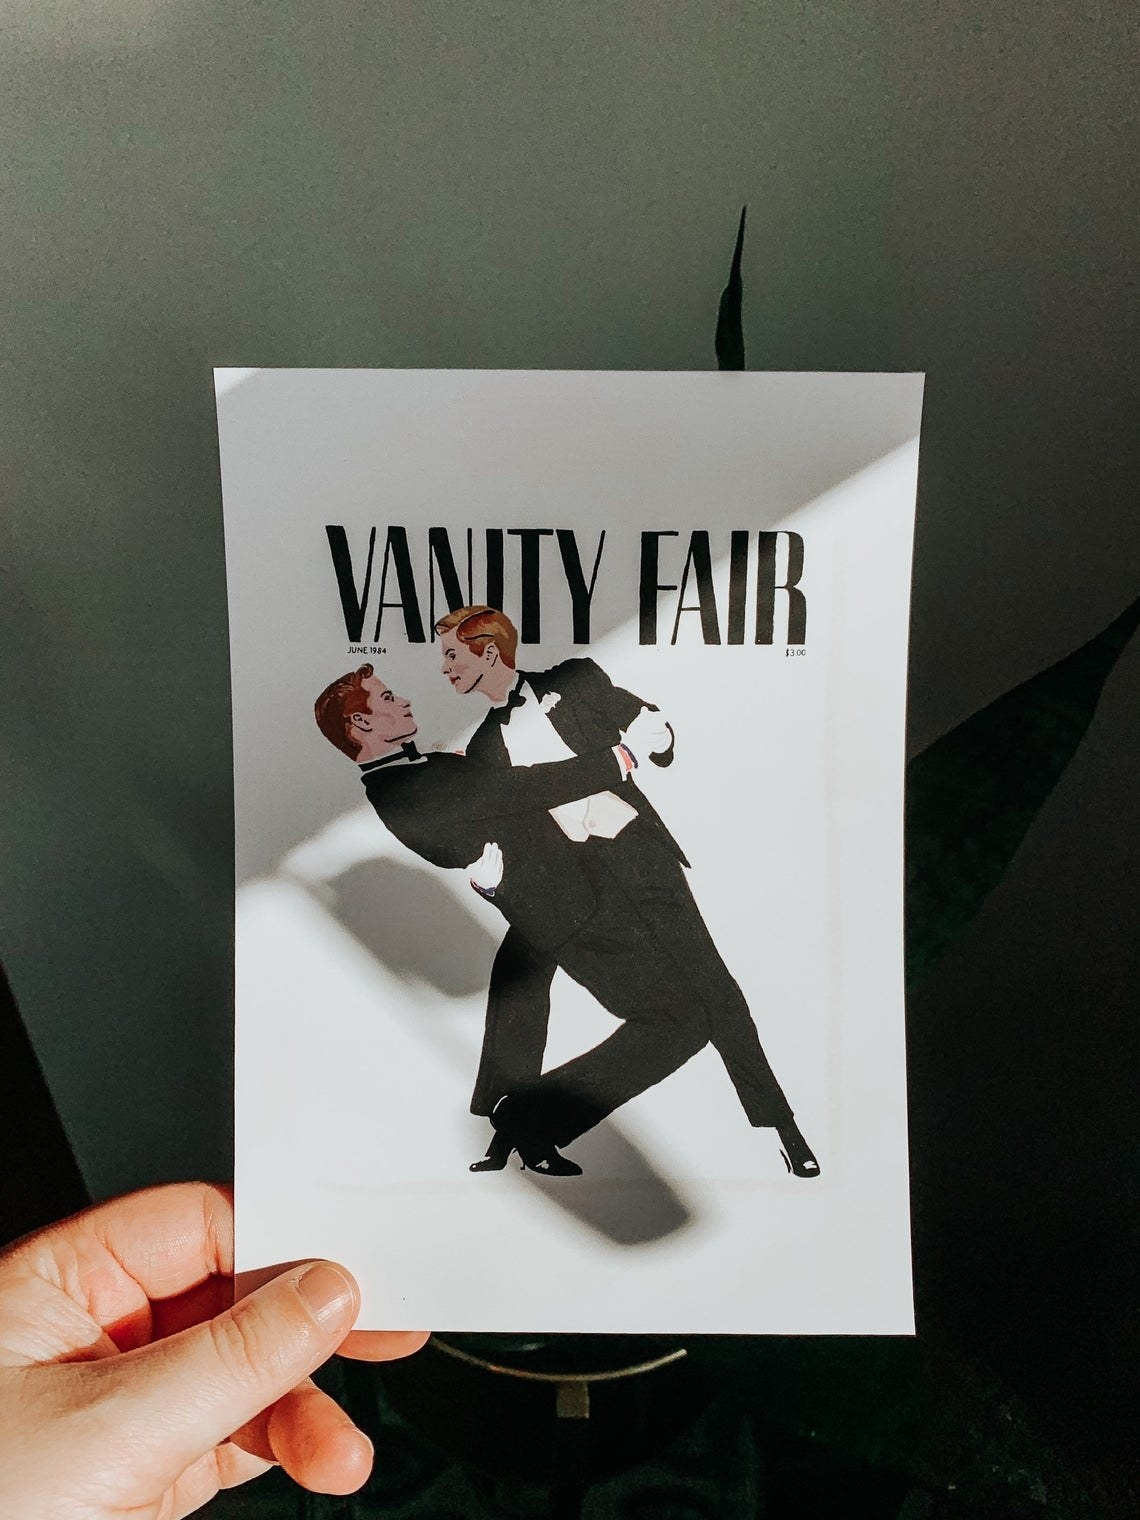 """Two people in traditional black tie suits dancing romantically together with """"Vanity Fair"""" written above them"""